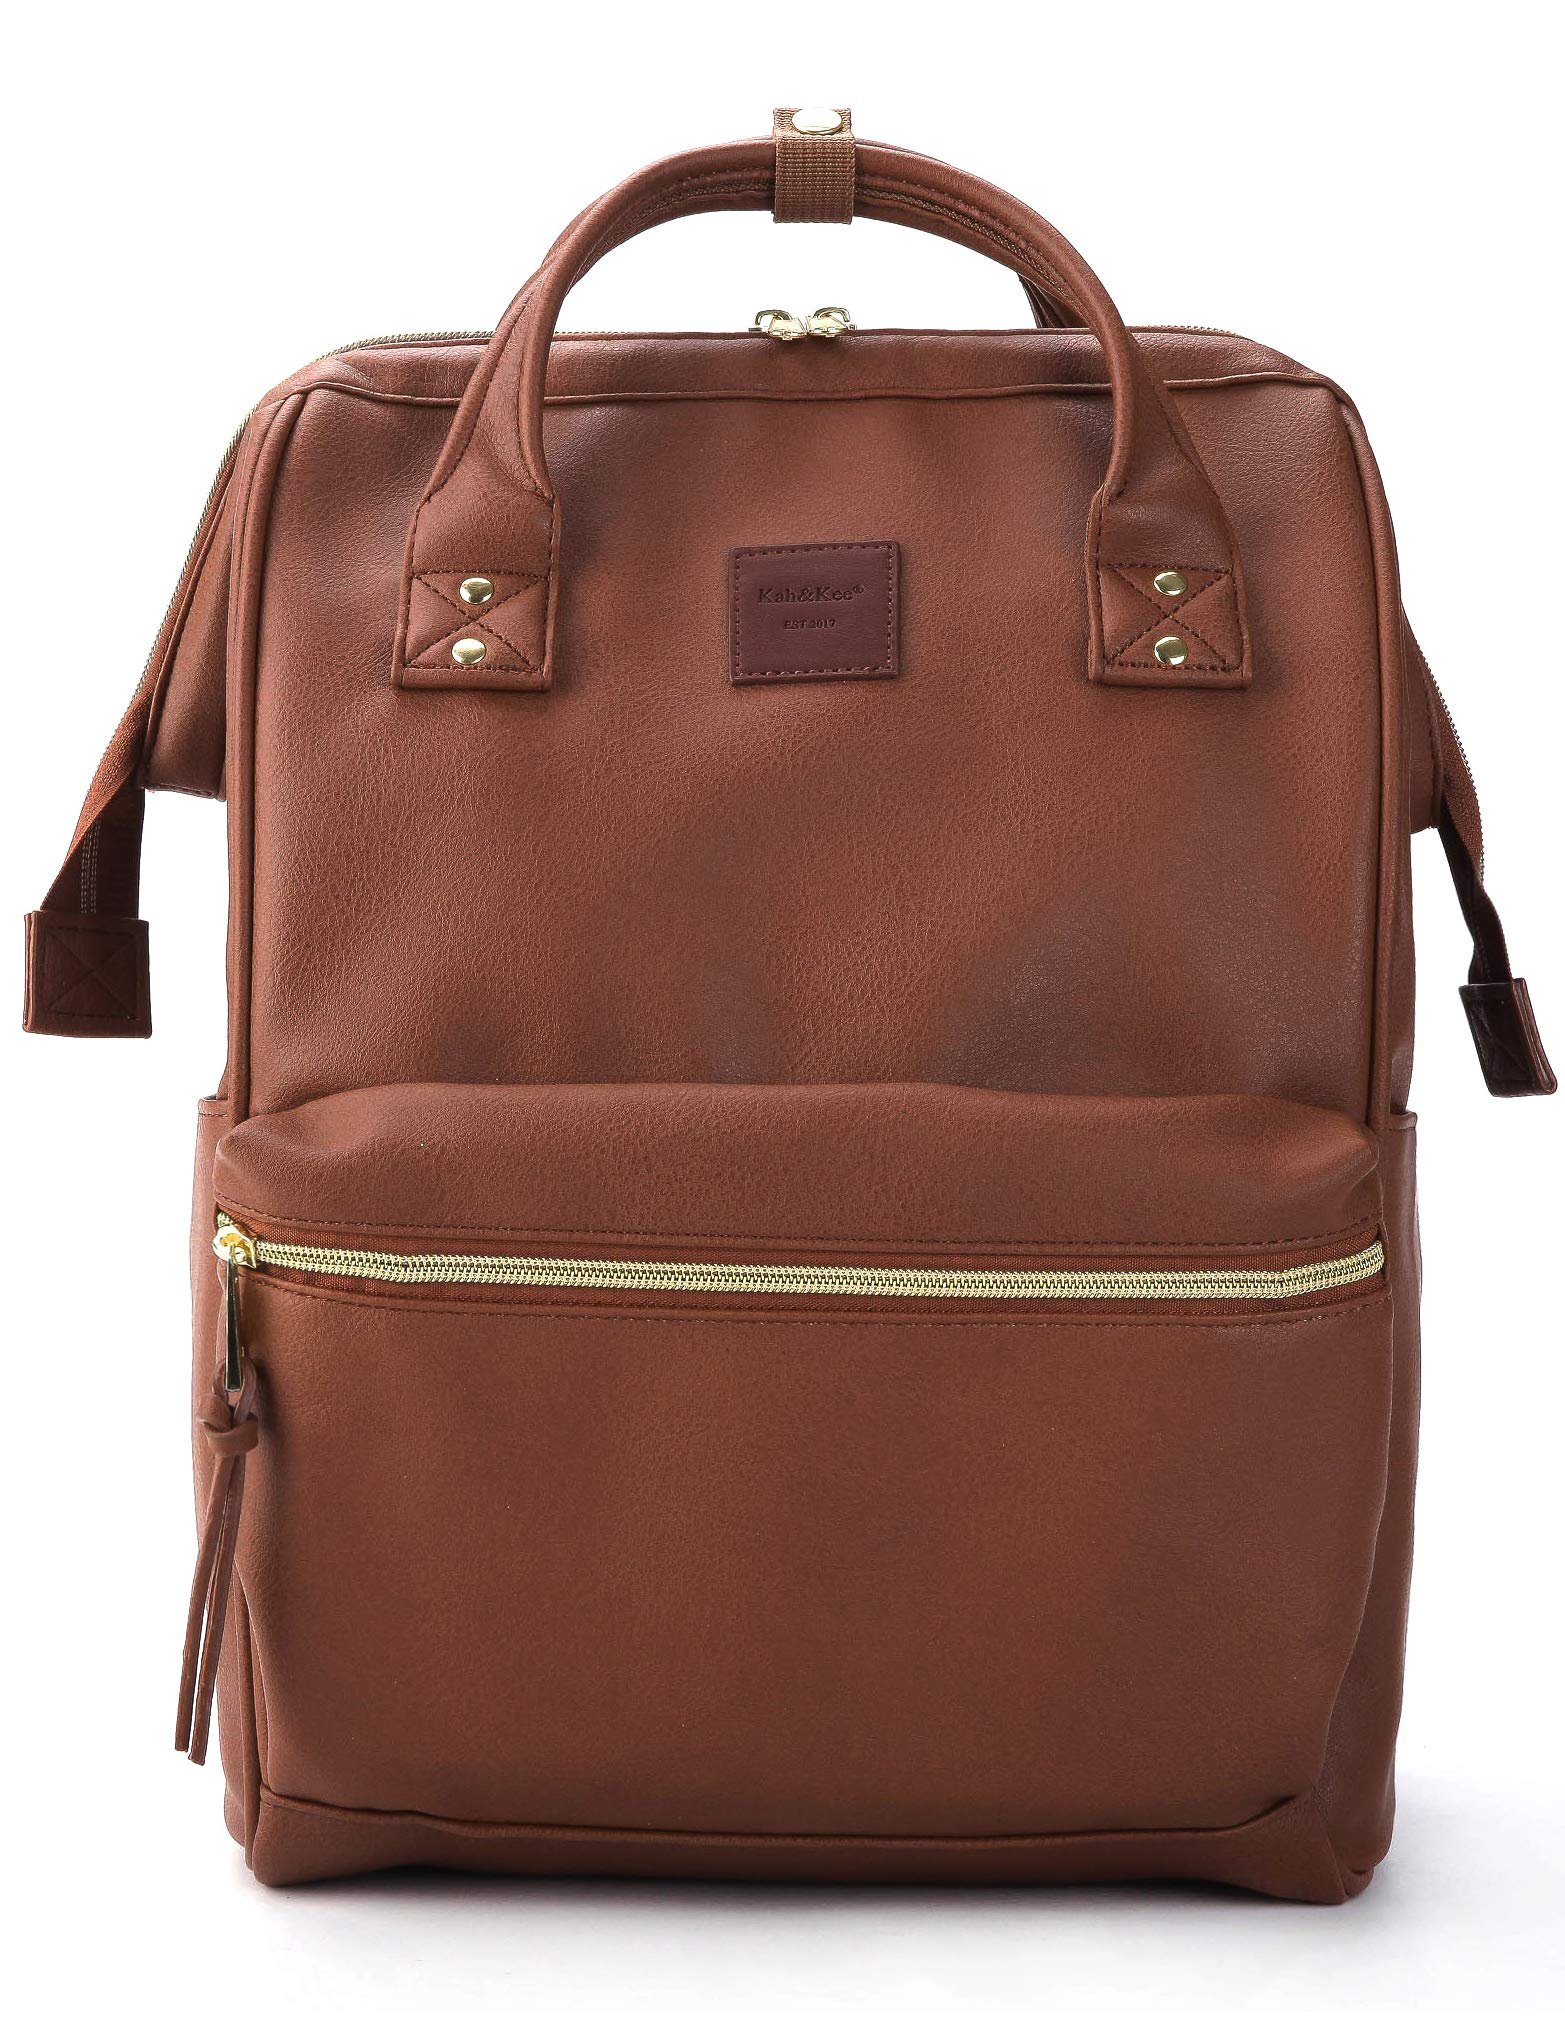 Kah Kee Leather Backpack Compartment